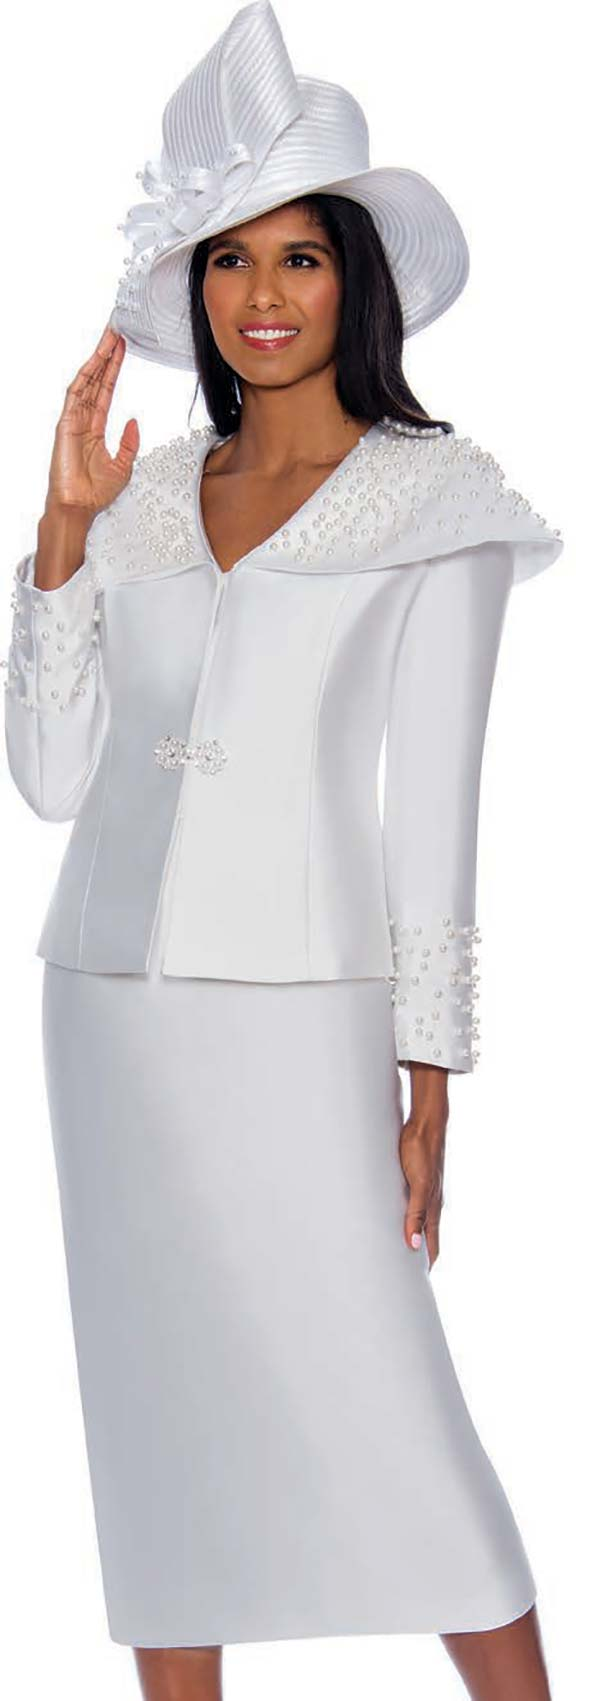 GMI G8582-White - Skirt Suit Featuring Over The Shoulder Collar Jacket Embellished With Pearl Beads